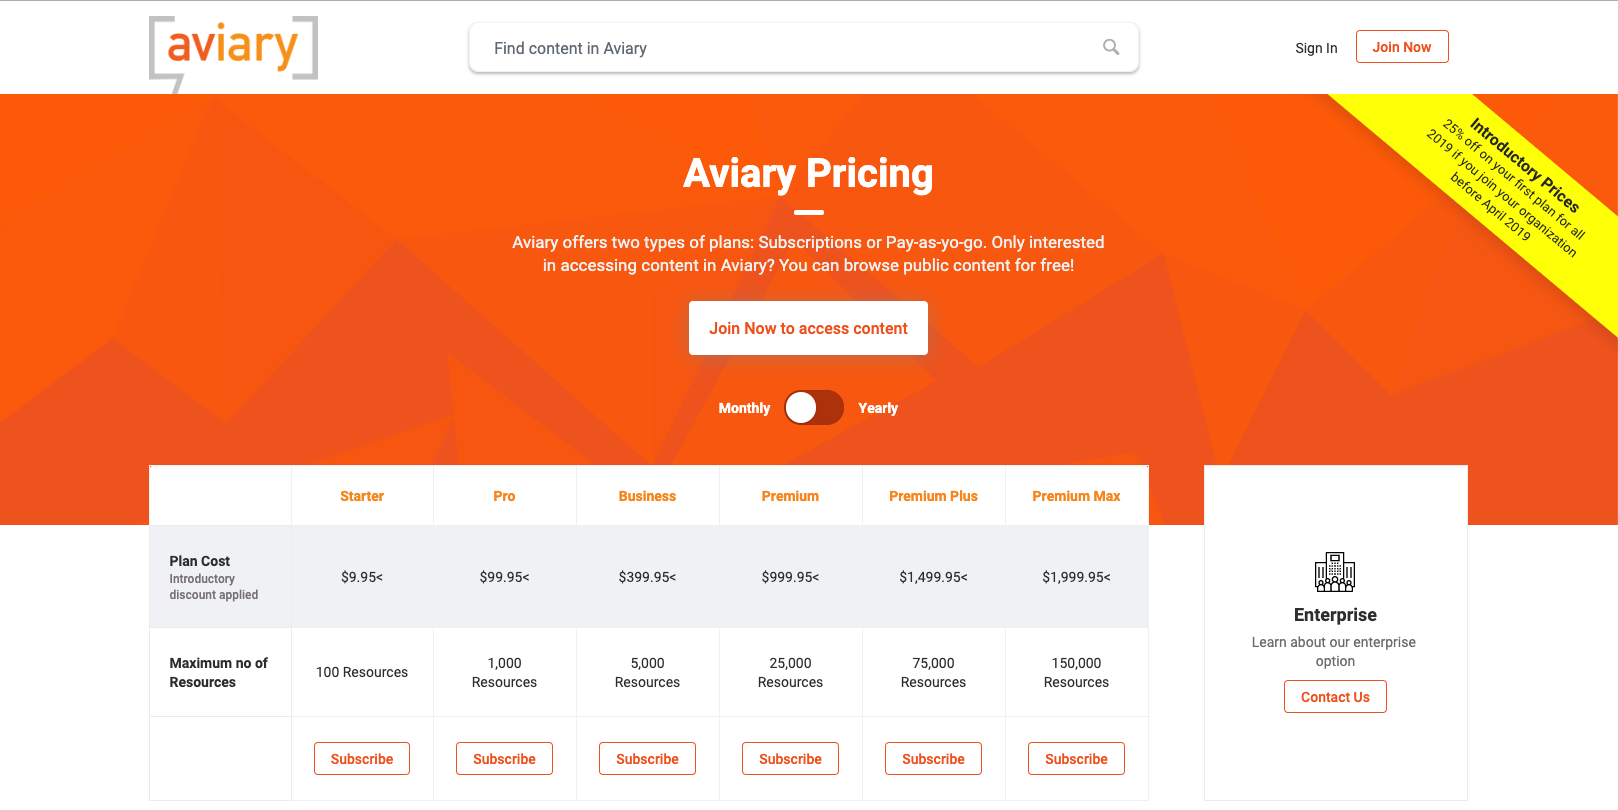 Aviary Pricing Page